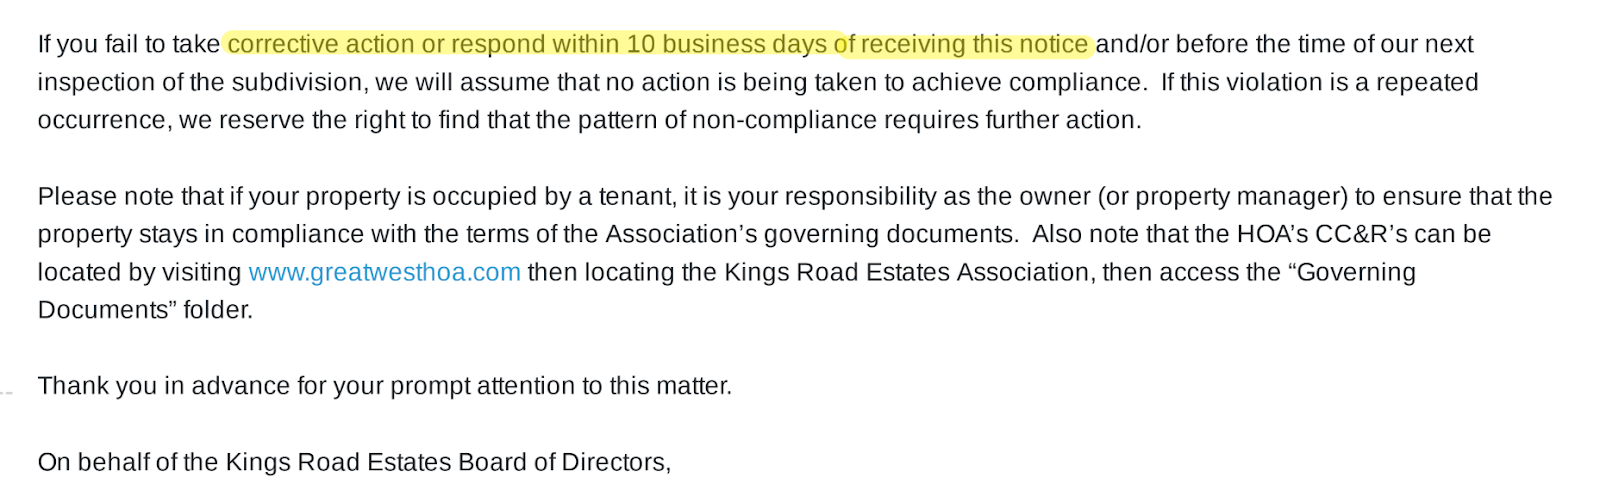 Another HOA letter example.